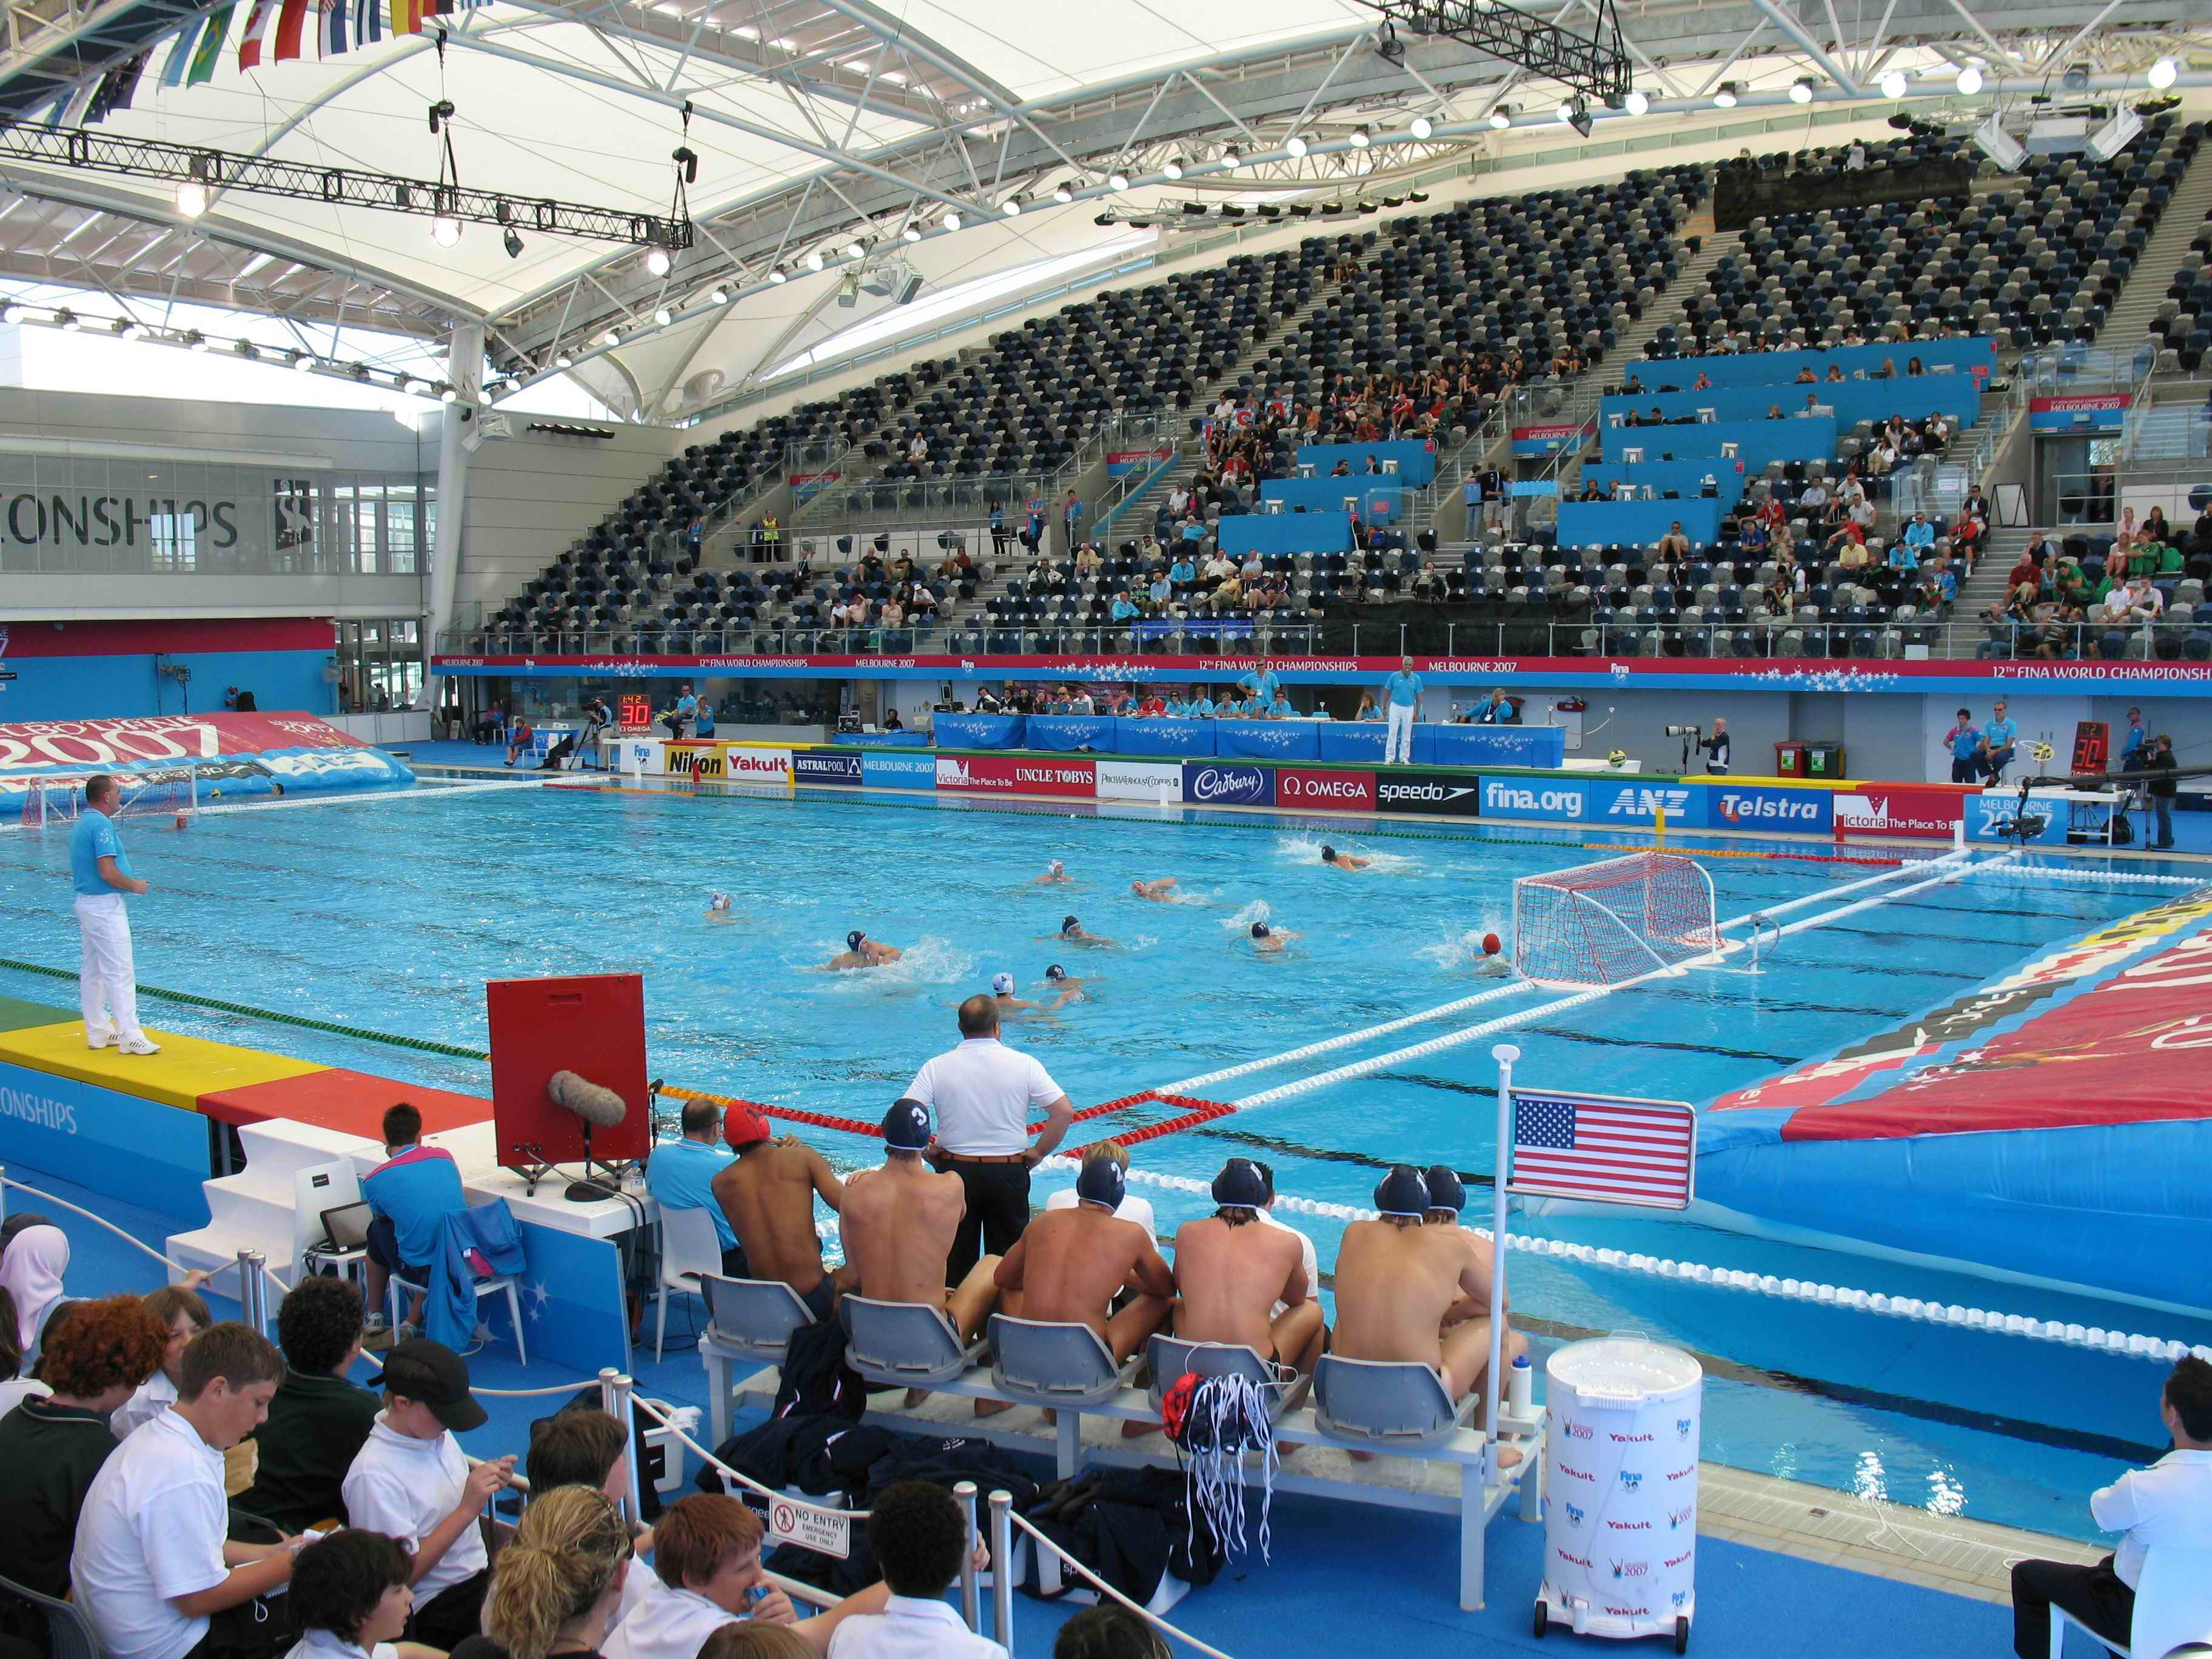 Competition FINA Waterpolo Venue, Anti Wave Complete Polo Field